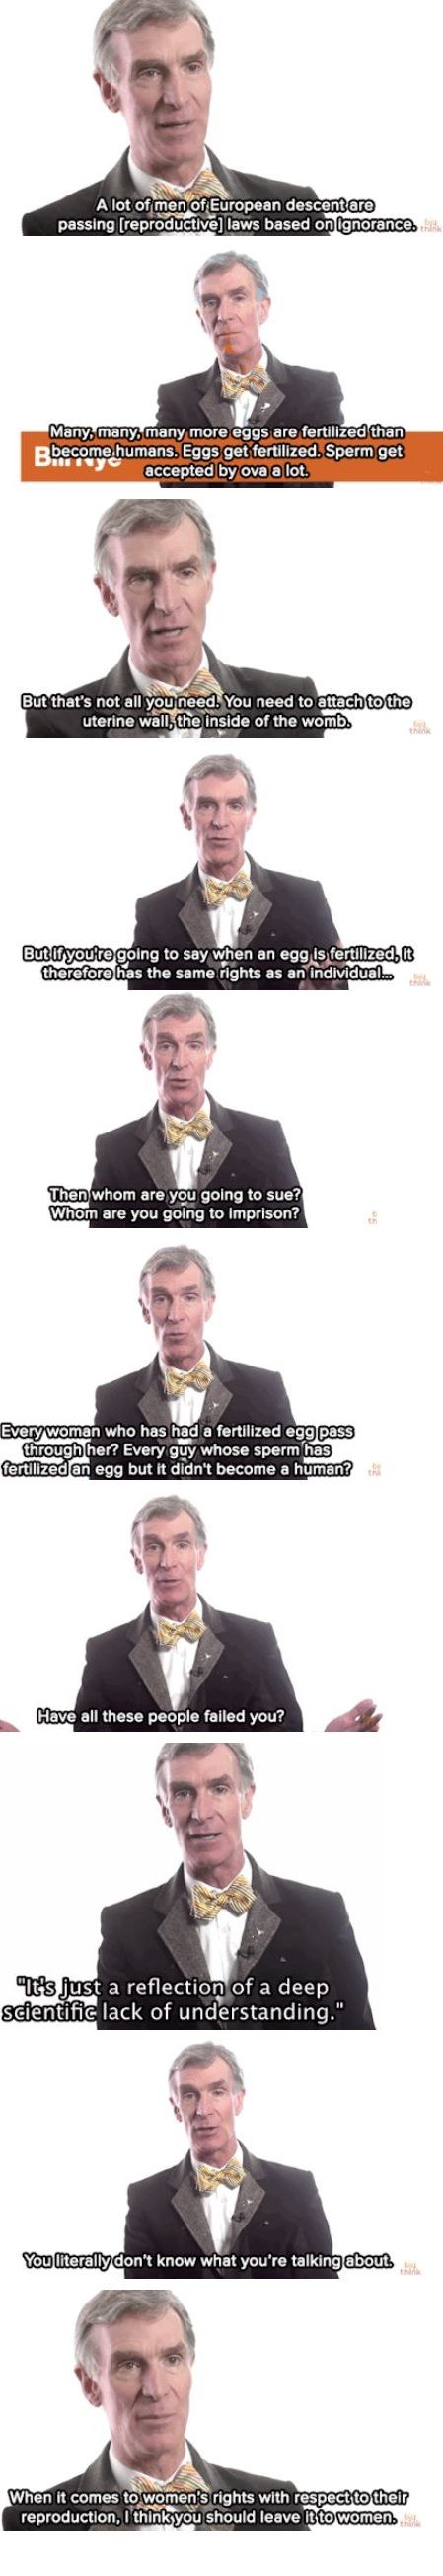 Right on, Bill Nye!